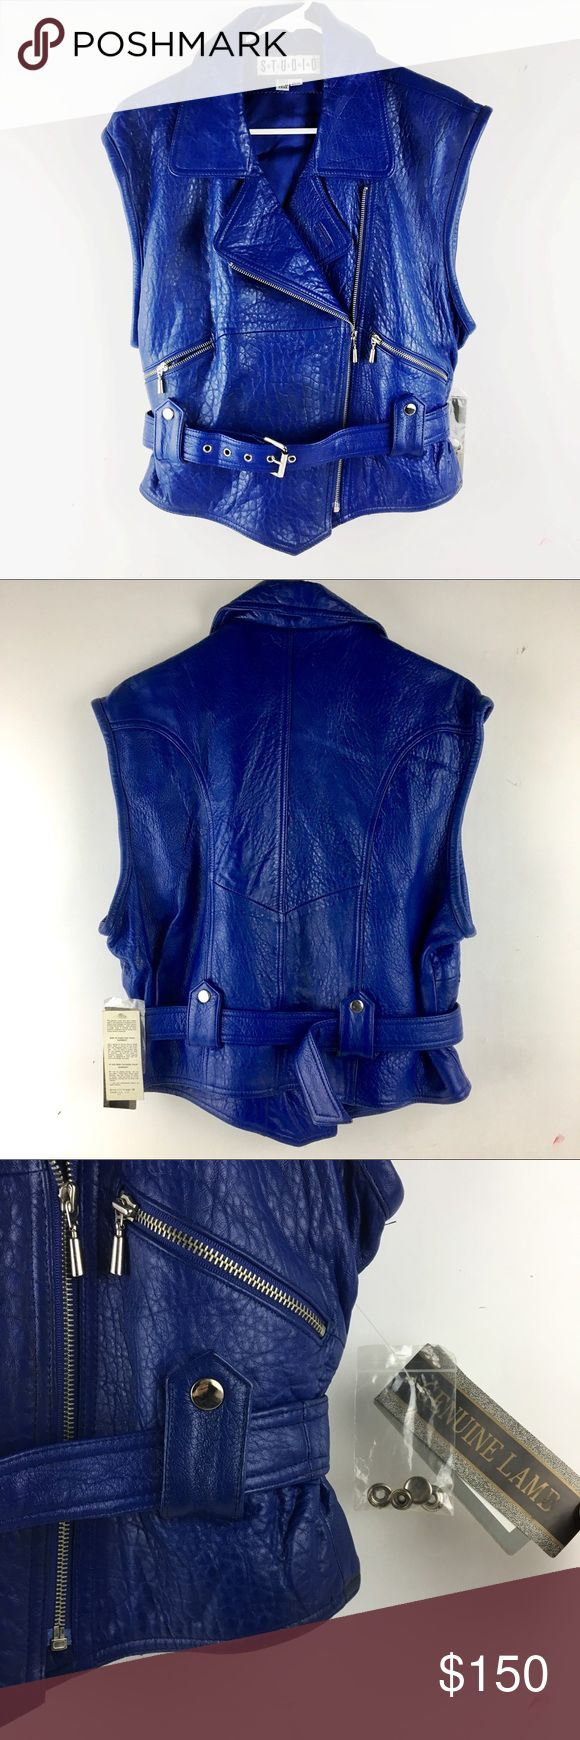 Genuine Lambskin Leather Moto Vest Cobalt Blue Brand new. Such a statement piece to add to any wardrobe. Extremely high quality! Not Harley Davidson tagged for motorcycle aesthetic. Harley-Davidson Jackets & Coats Vests